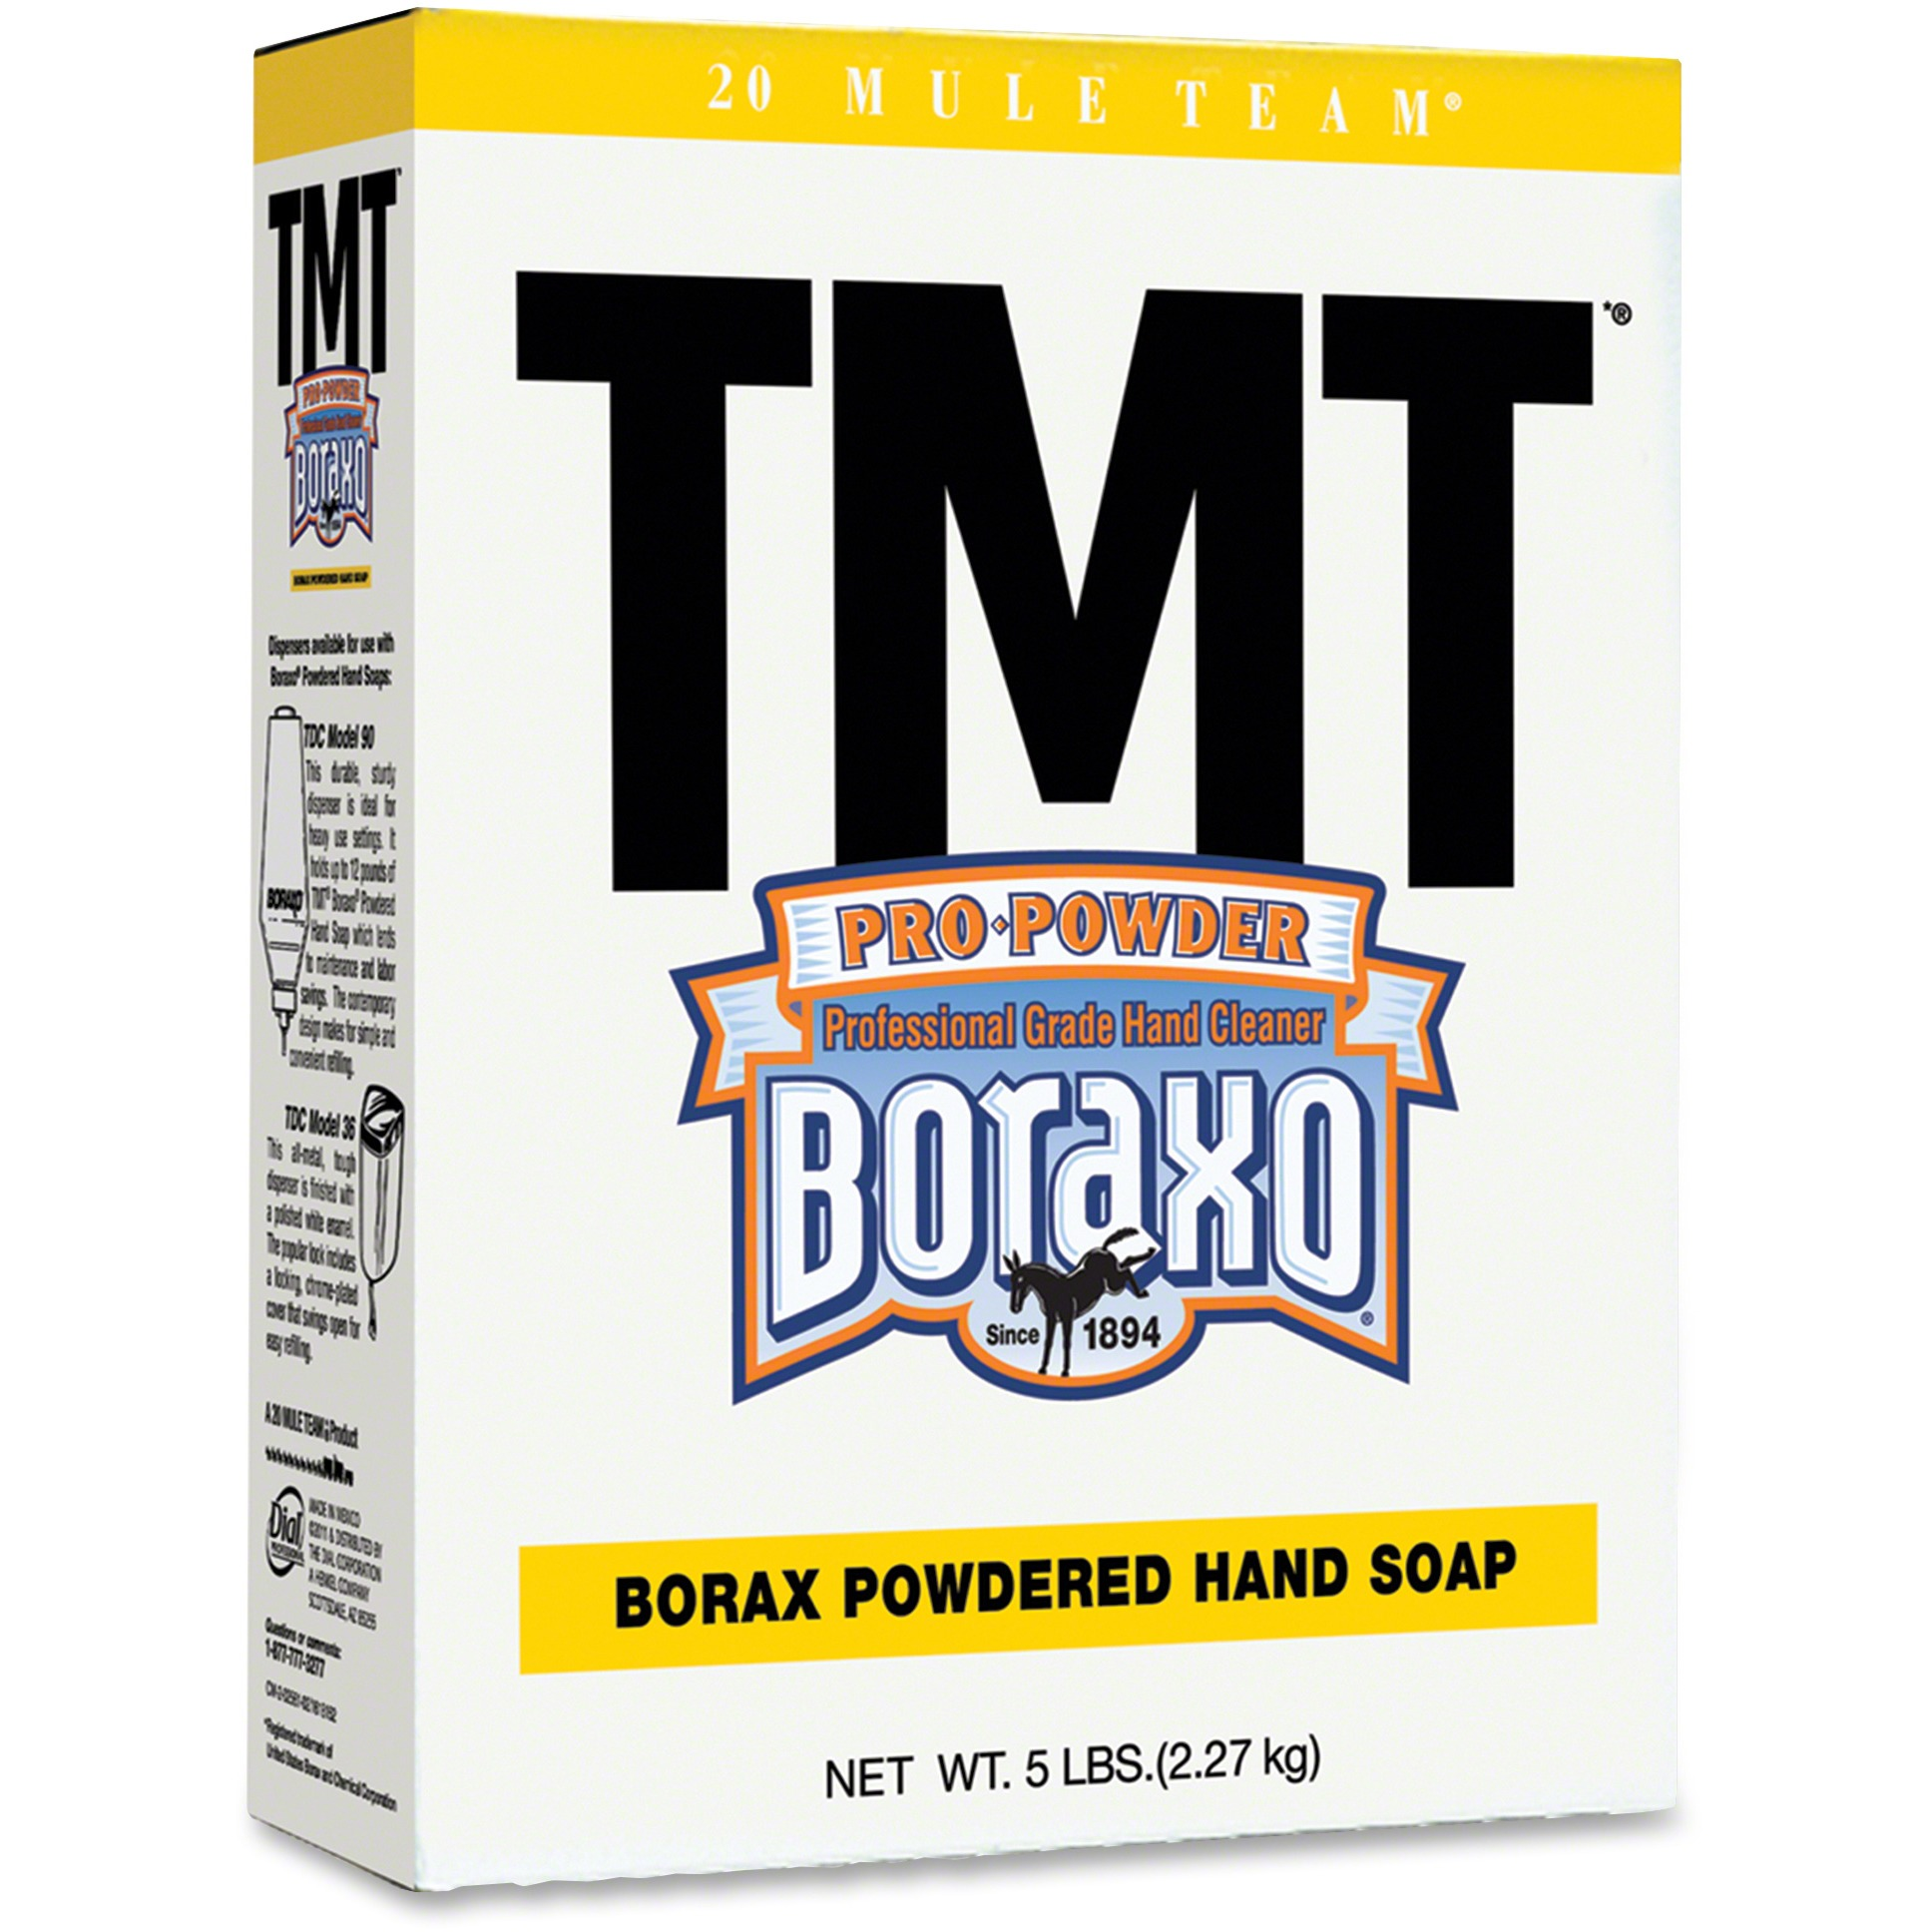 Dial Corp. TMT Boraxo Powdered Hand Soap -DIA02561